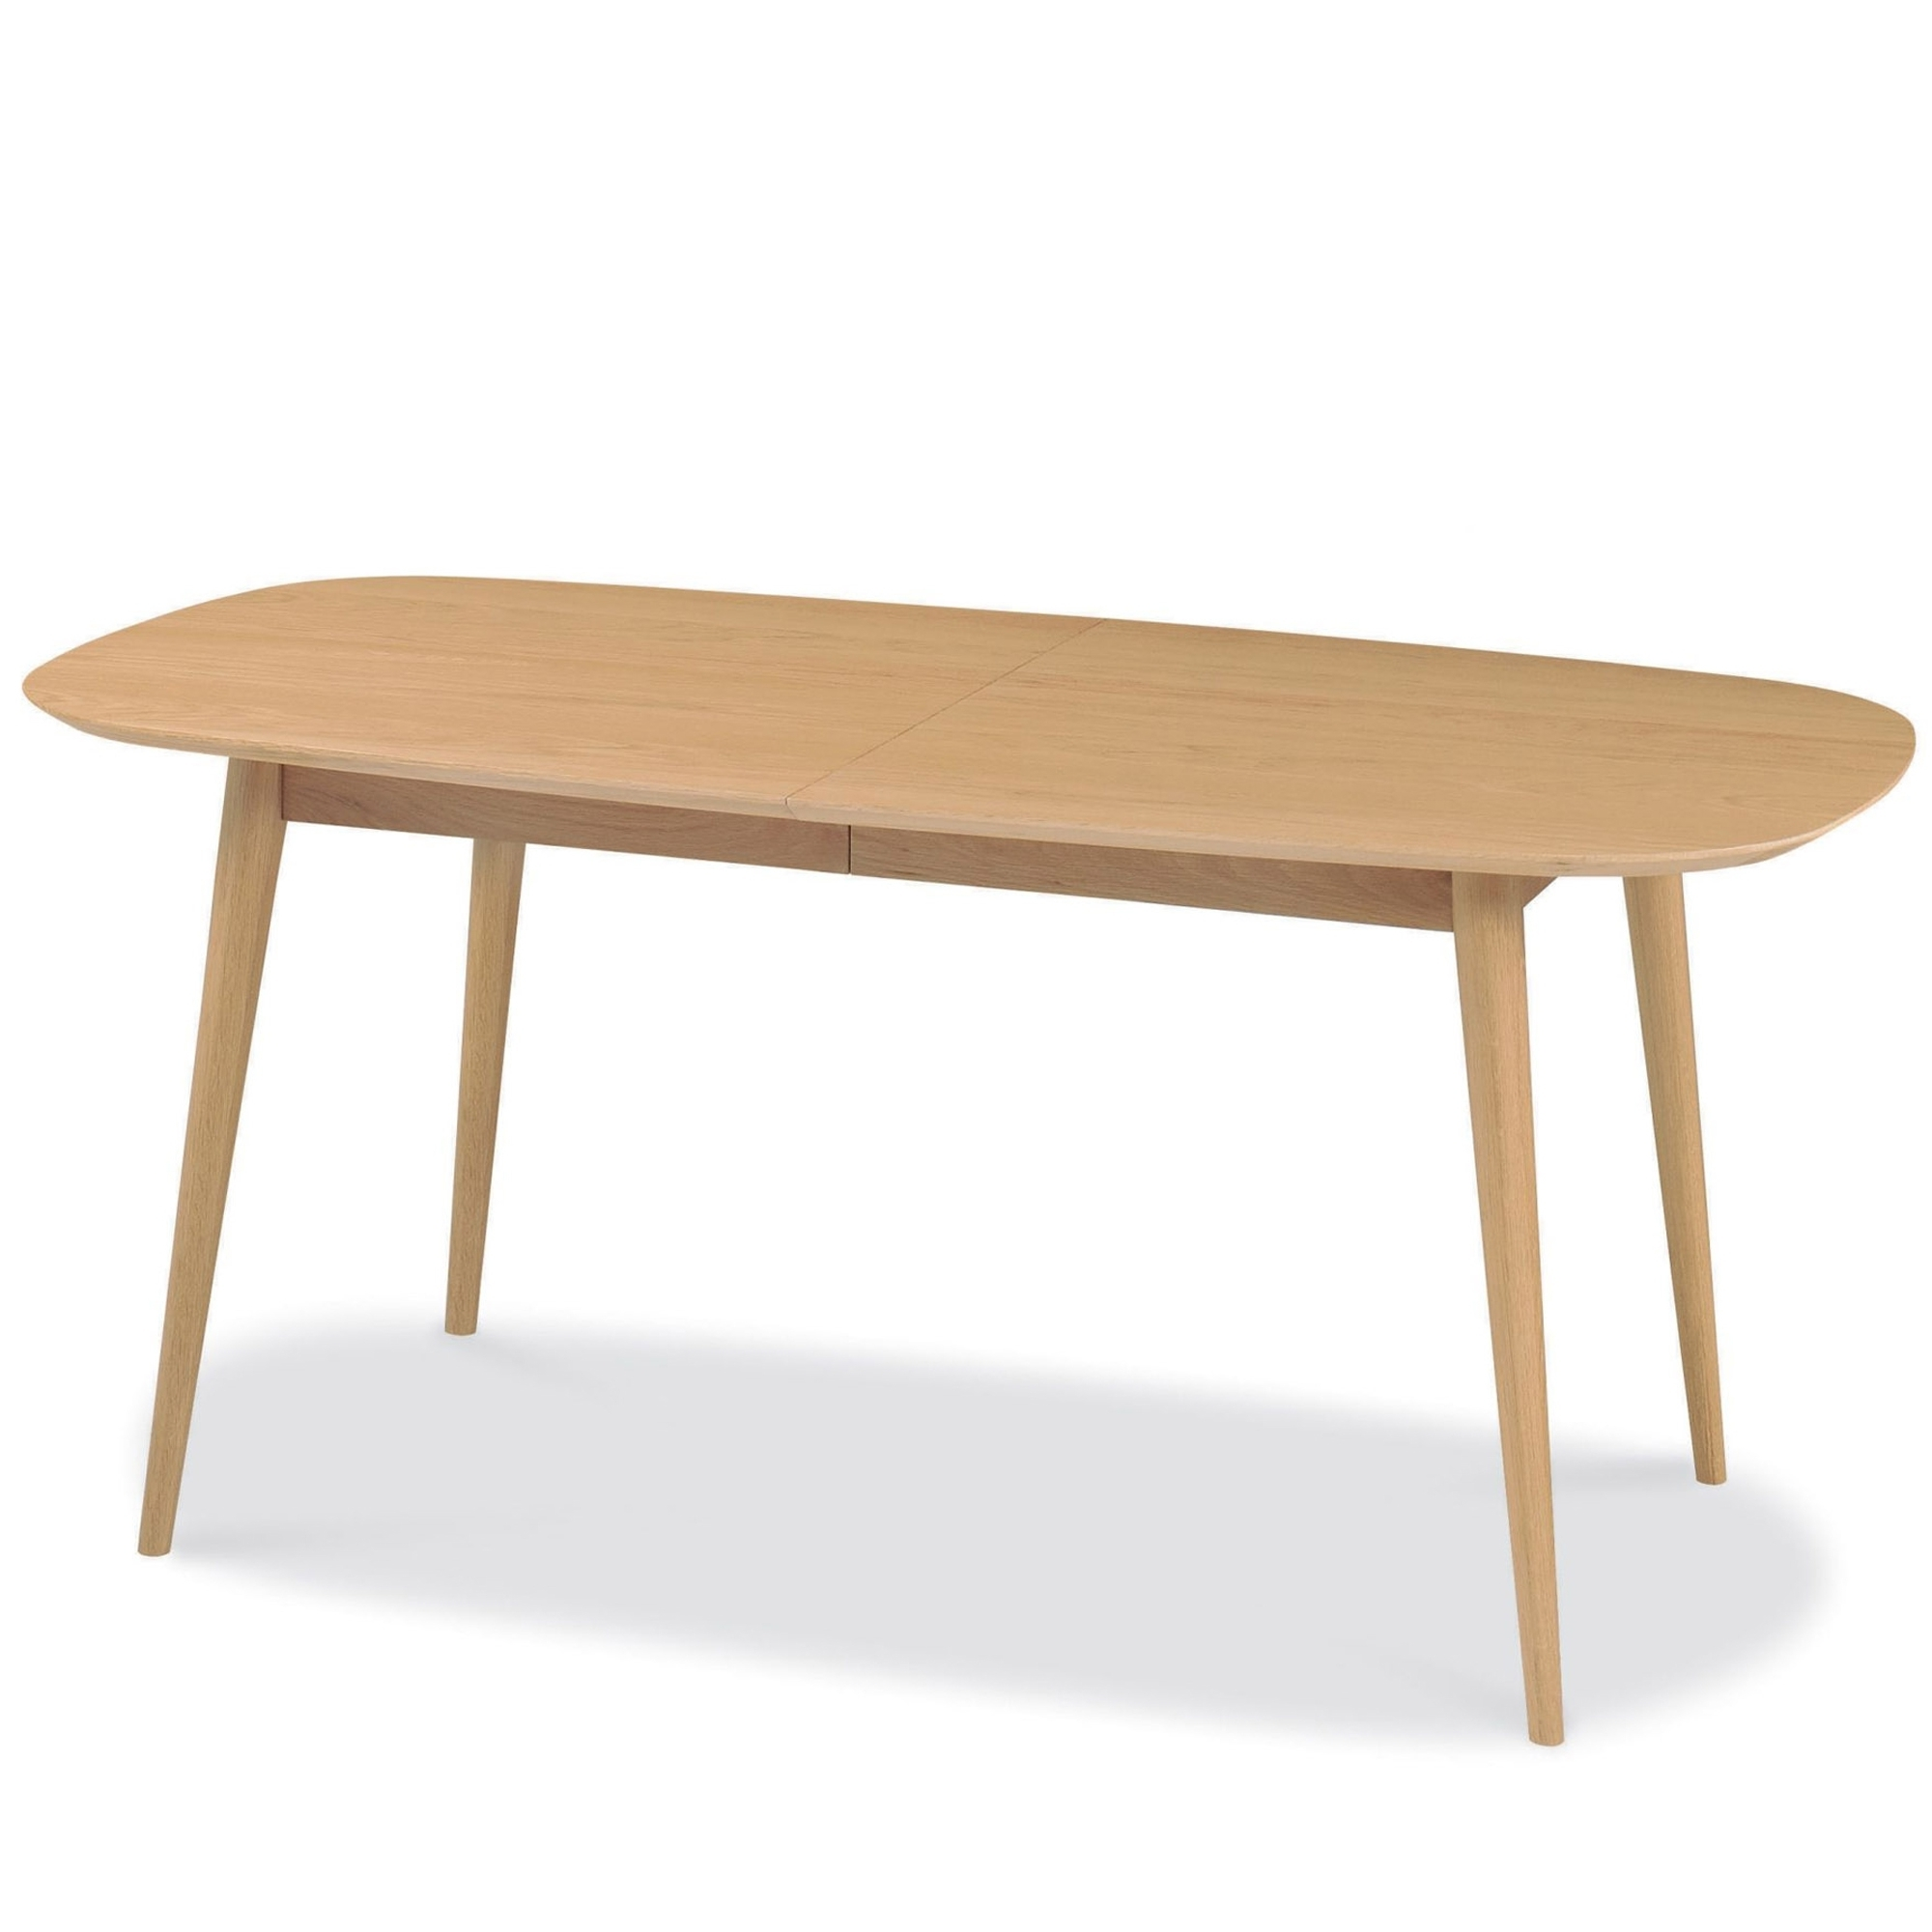 Extending Dining Tables With Well Known Cookes Collection Norway Oak Extending Dining Table – Dining (View 10 of 25)